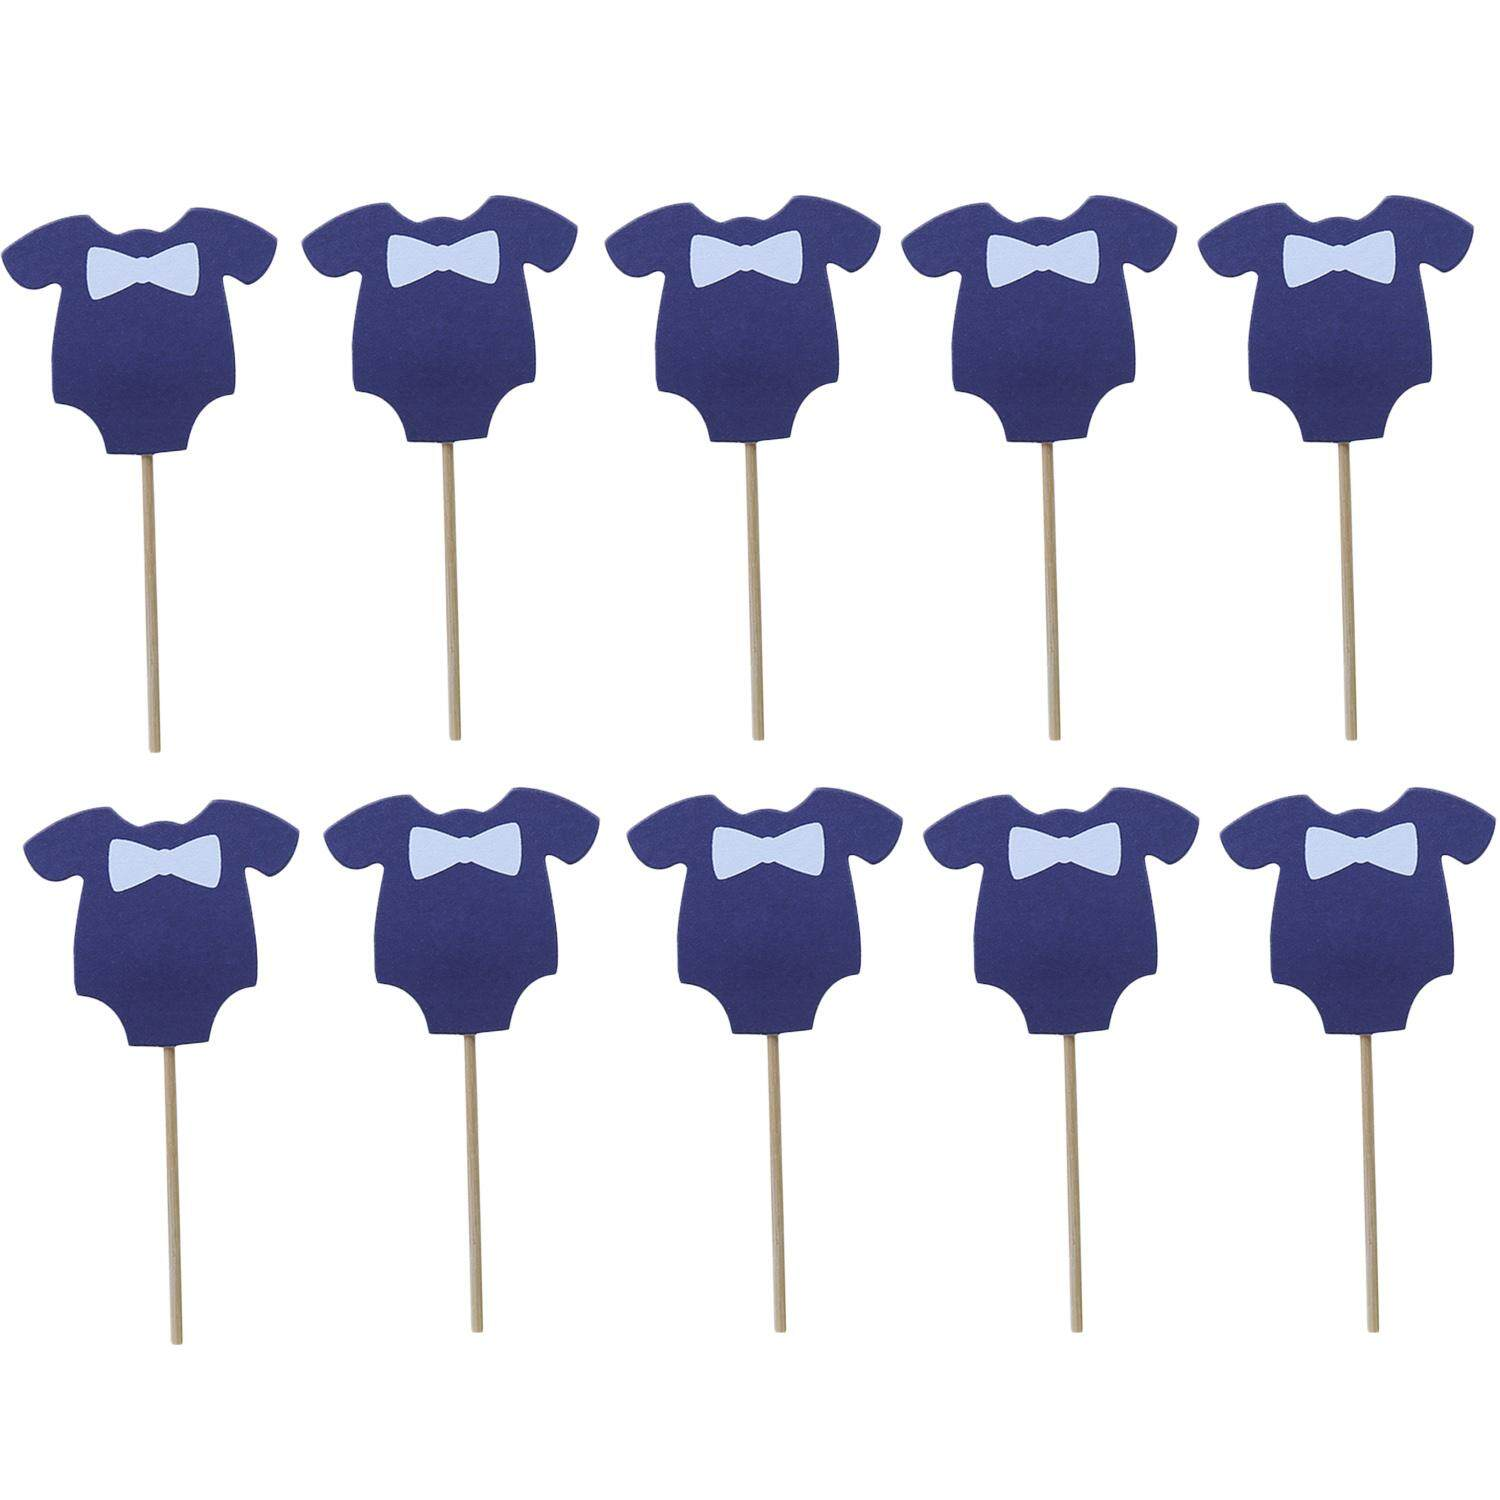 10pcs Lovely Clothes Shape Cake Picks Cupcake Toppers For Birthday Baby Shower Wedding Party Decor Supplies (blue/pink) - Intl By Stoneky.